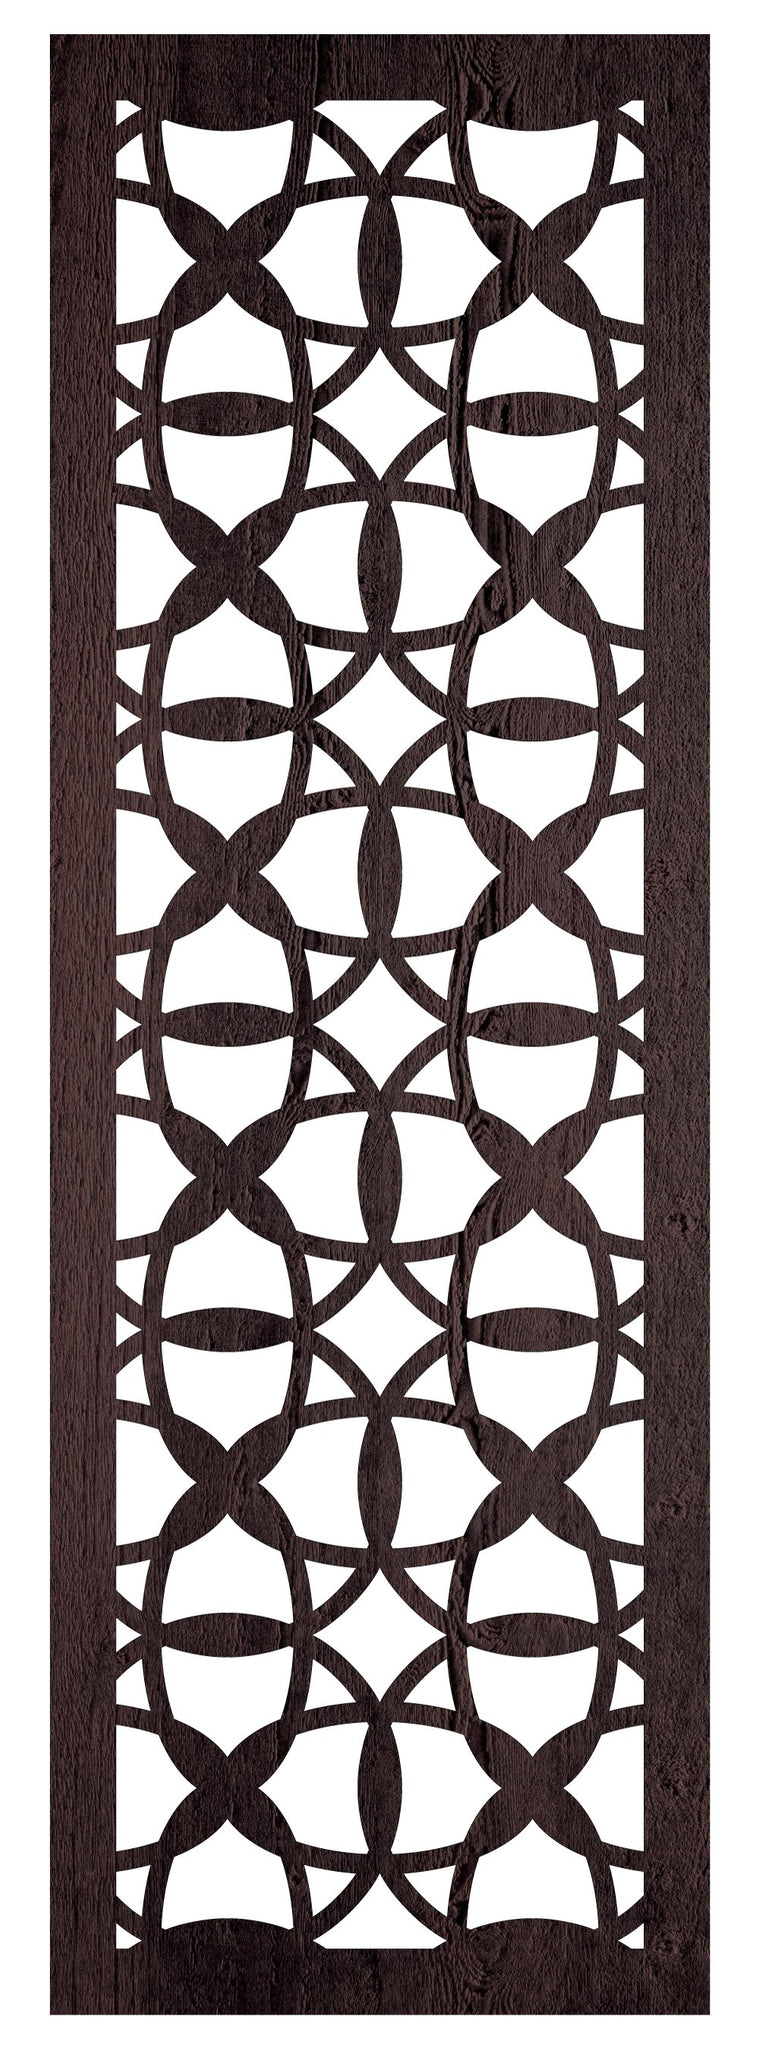 Budapest - 1800 x 600 mm - 9 mm Decorative Hardwood Screen - Living Effects